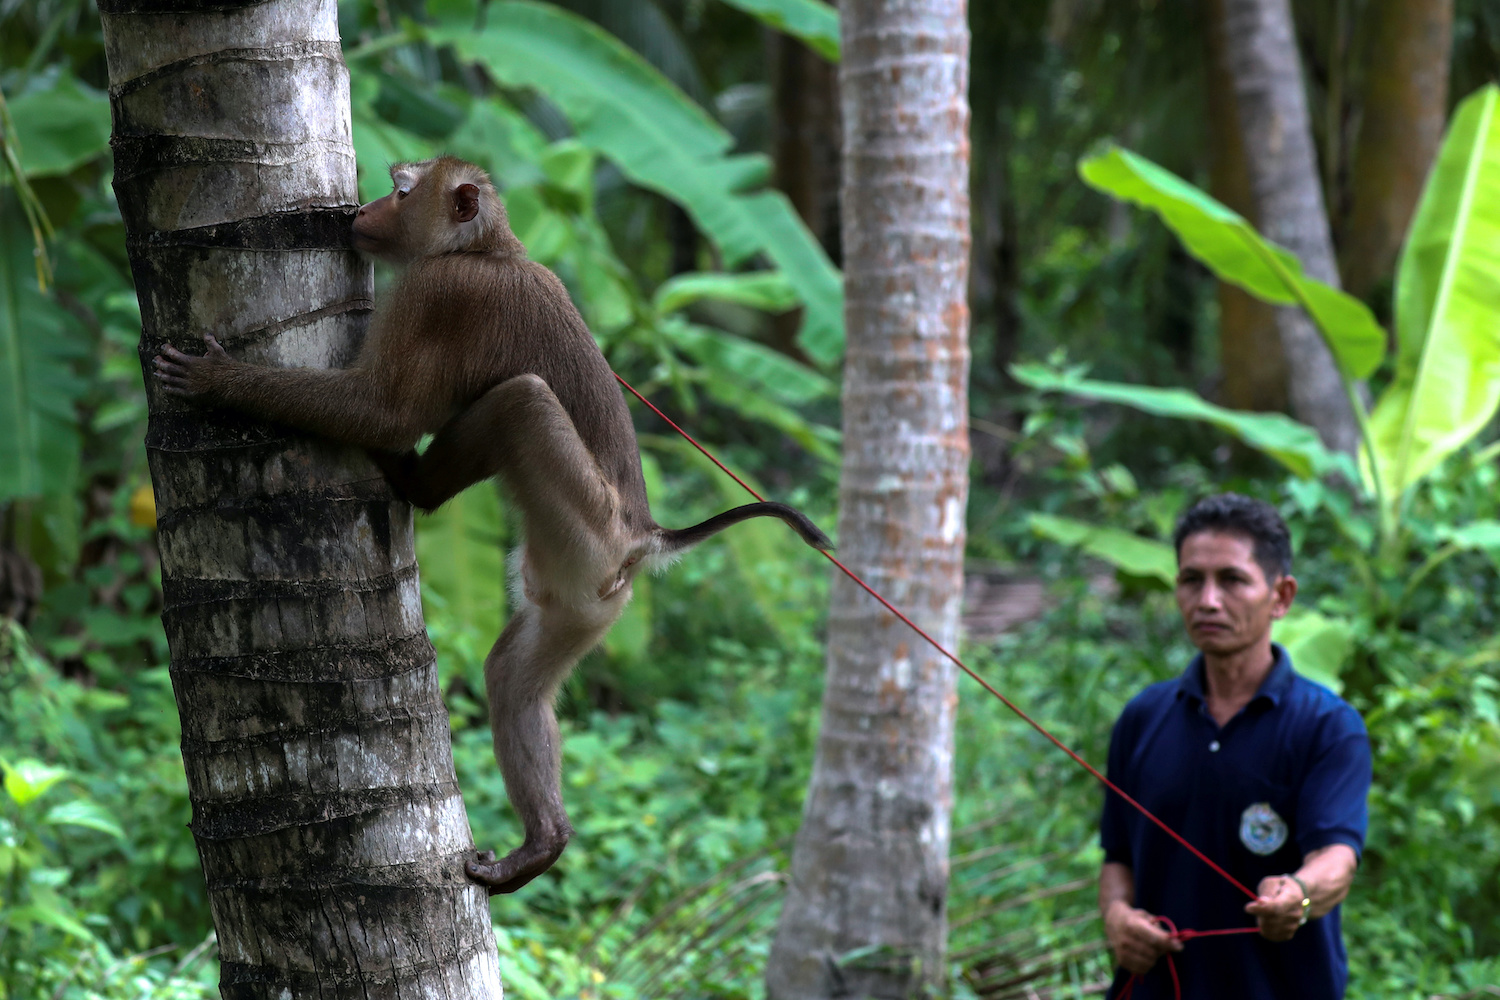 Nirun Wongwanich, 52, trains a monkey to pick coconuts in Surat Thani. He says his animals are treated humanely and sometimes used on older, taller trees. (Reuters Photo)